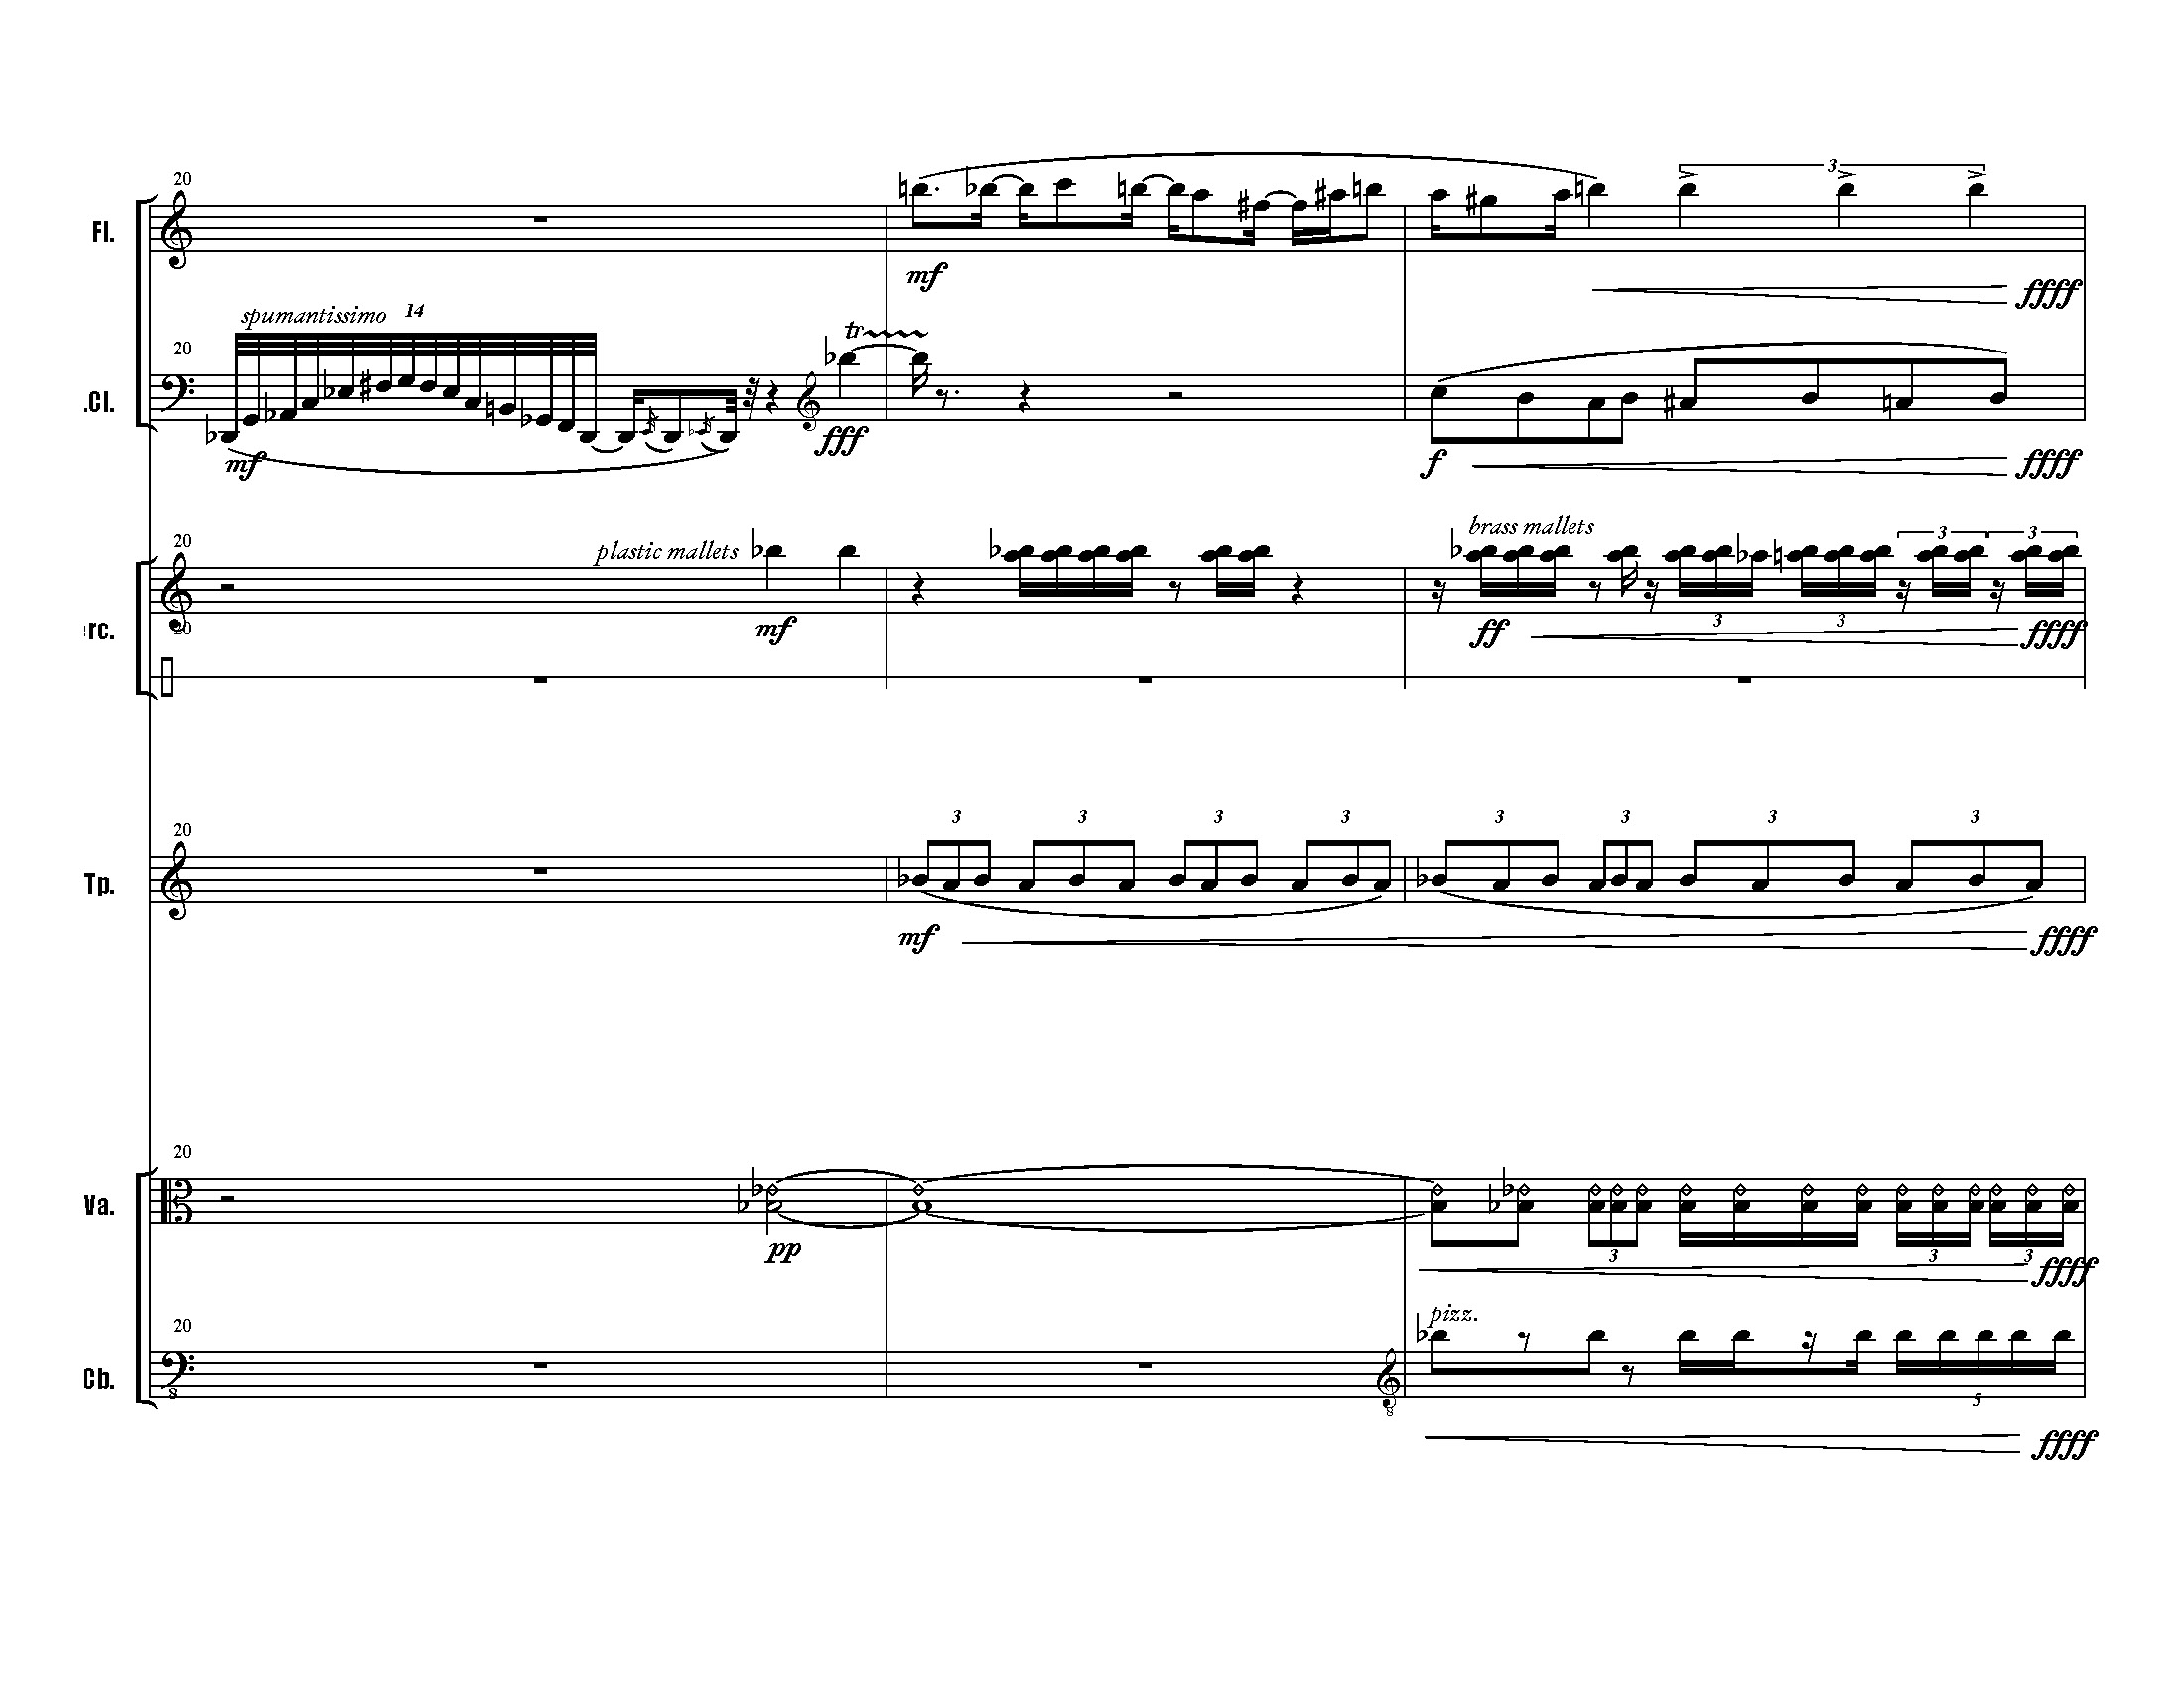 167 - Composition 167_Page_11.jpg